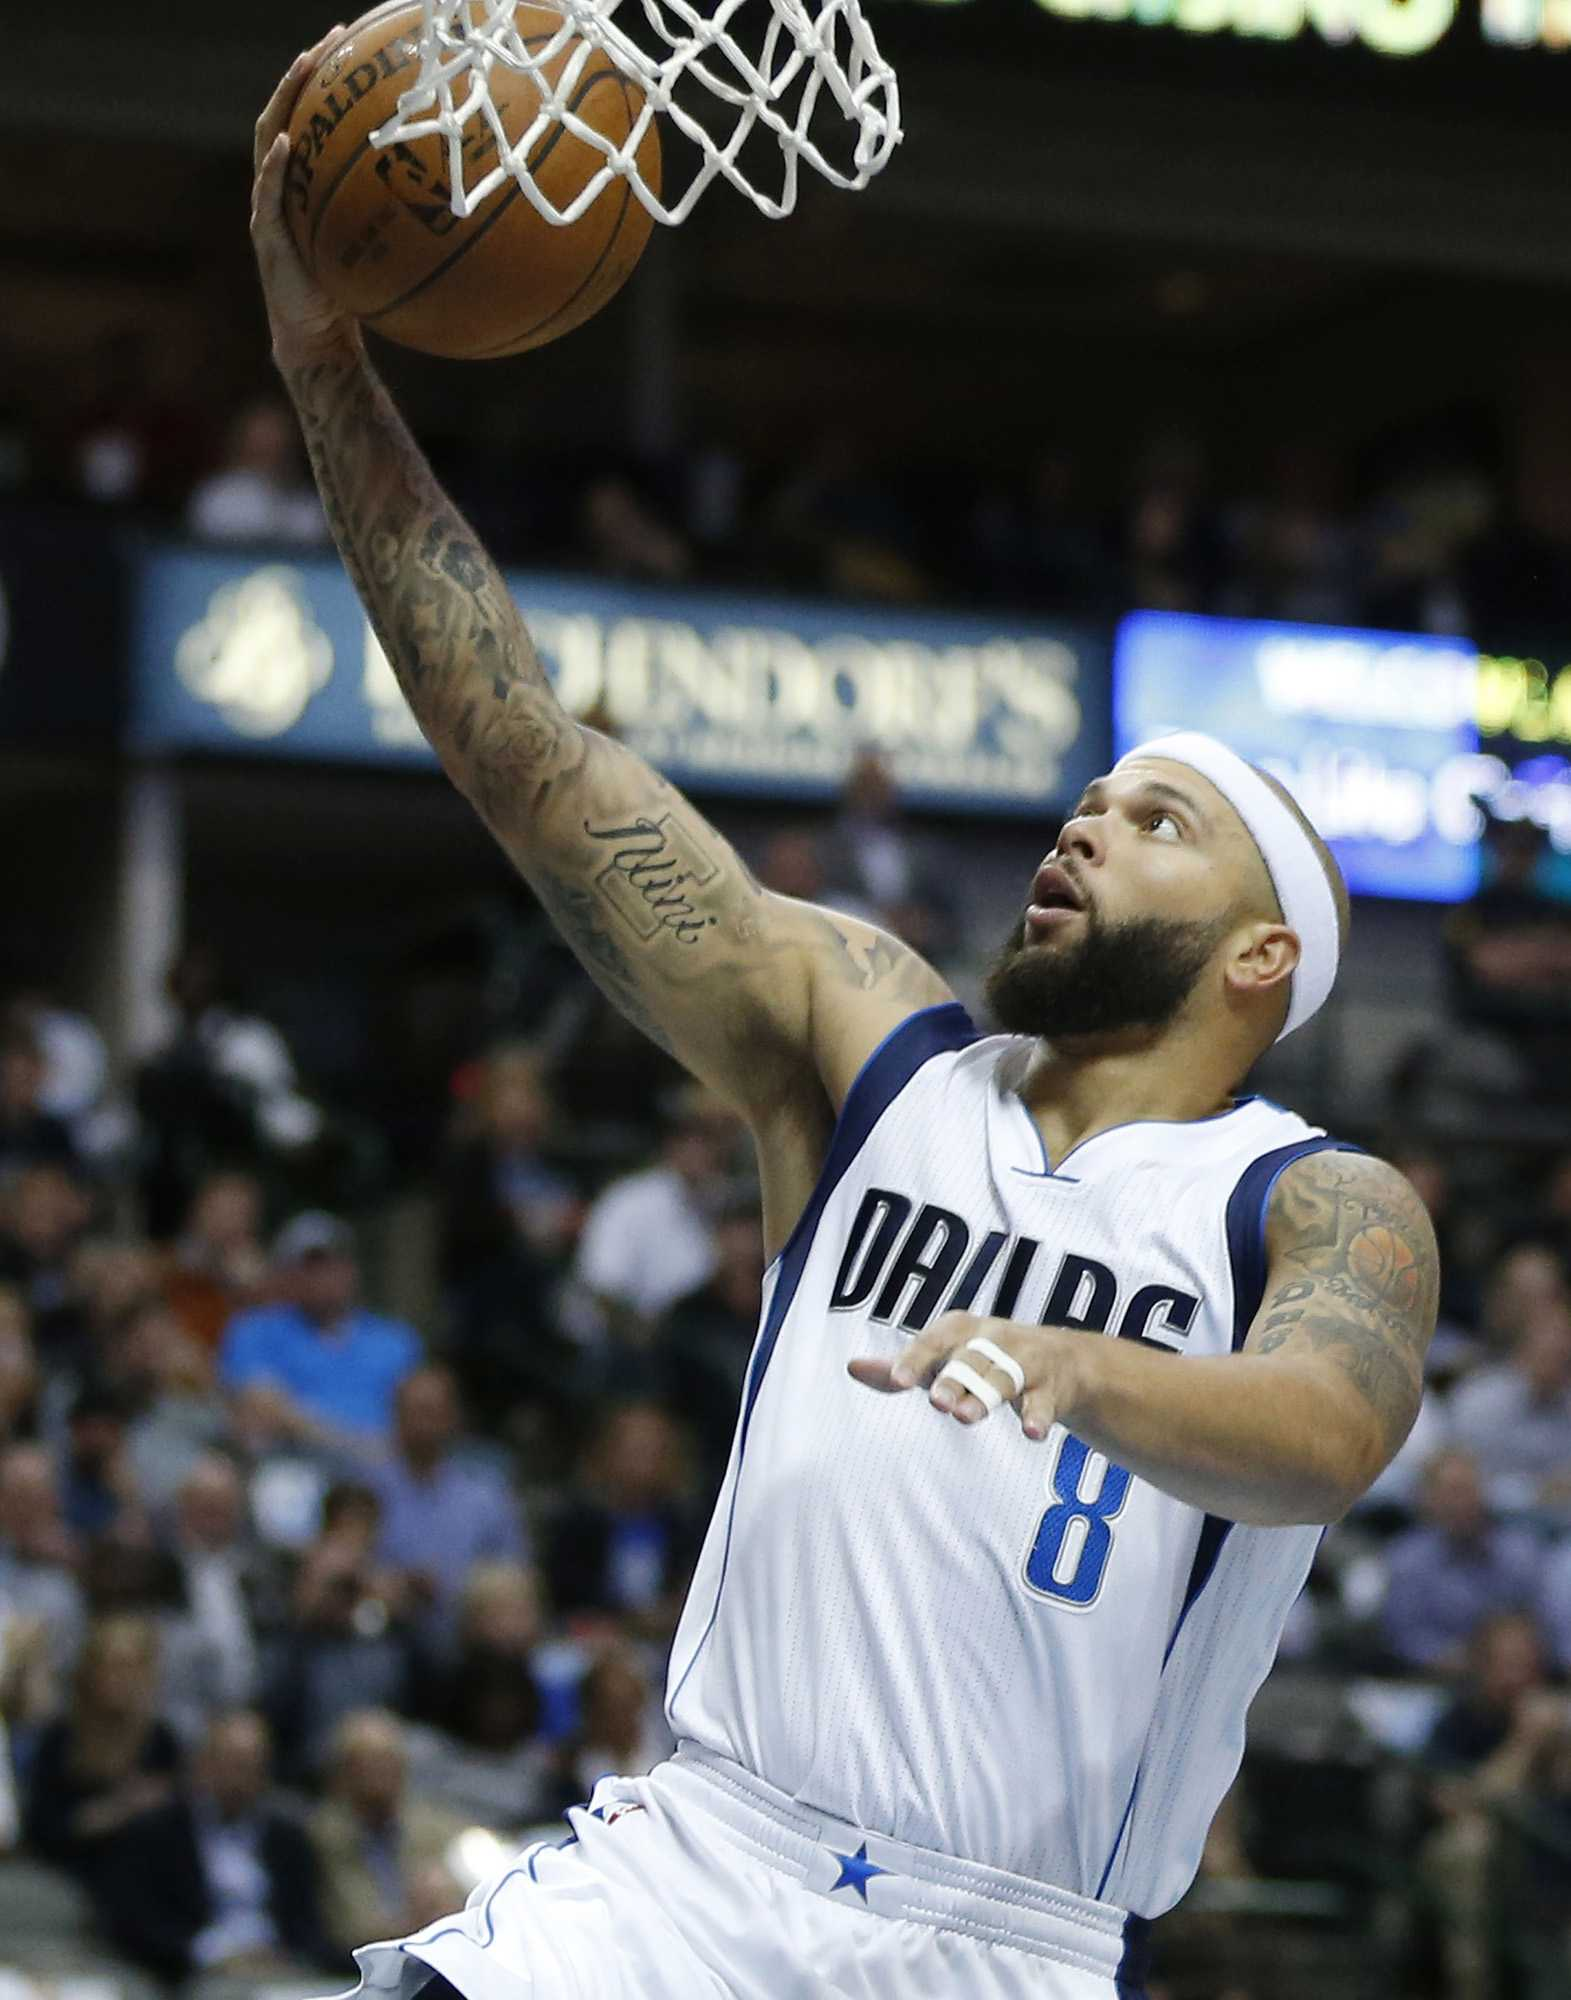 Dallas Mavericks guard Deron Williams (8) shoots the ball during the first half on Monday, March 7, 2016, at the American Airlines Center in Dallas. (Andy Jacobsohn/Dallas Morning News/TNS)